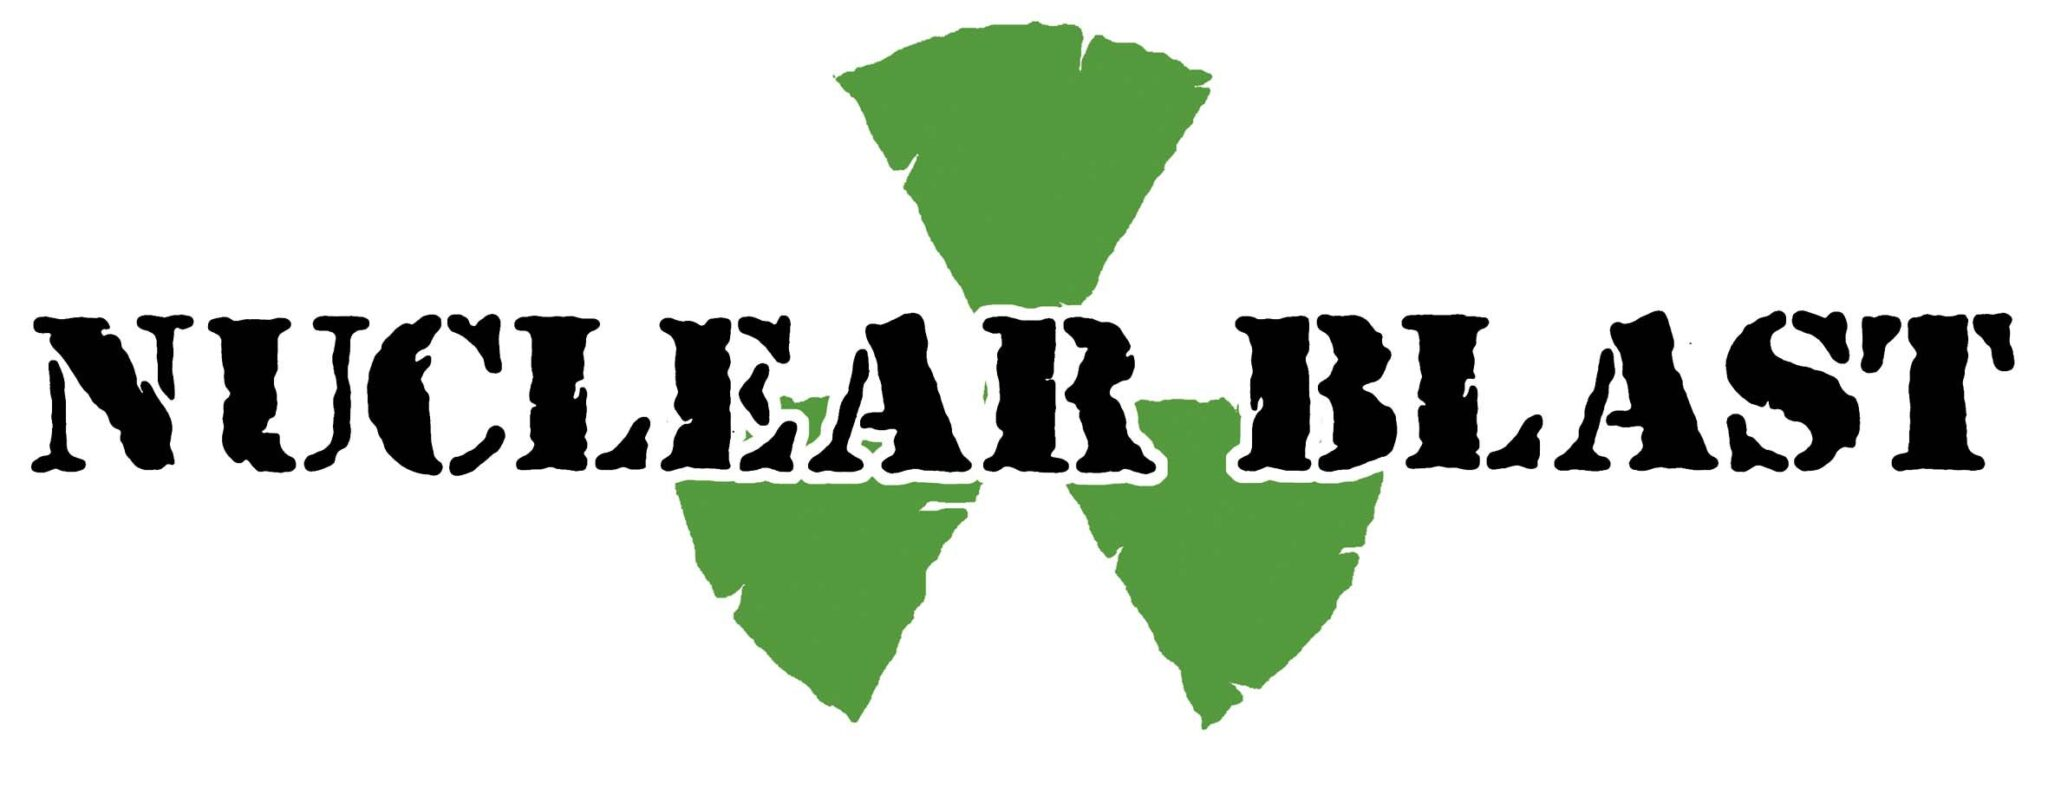 Believe Digital Acquires Nuclear Blast Records For Eight Figures